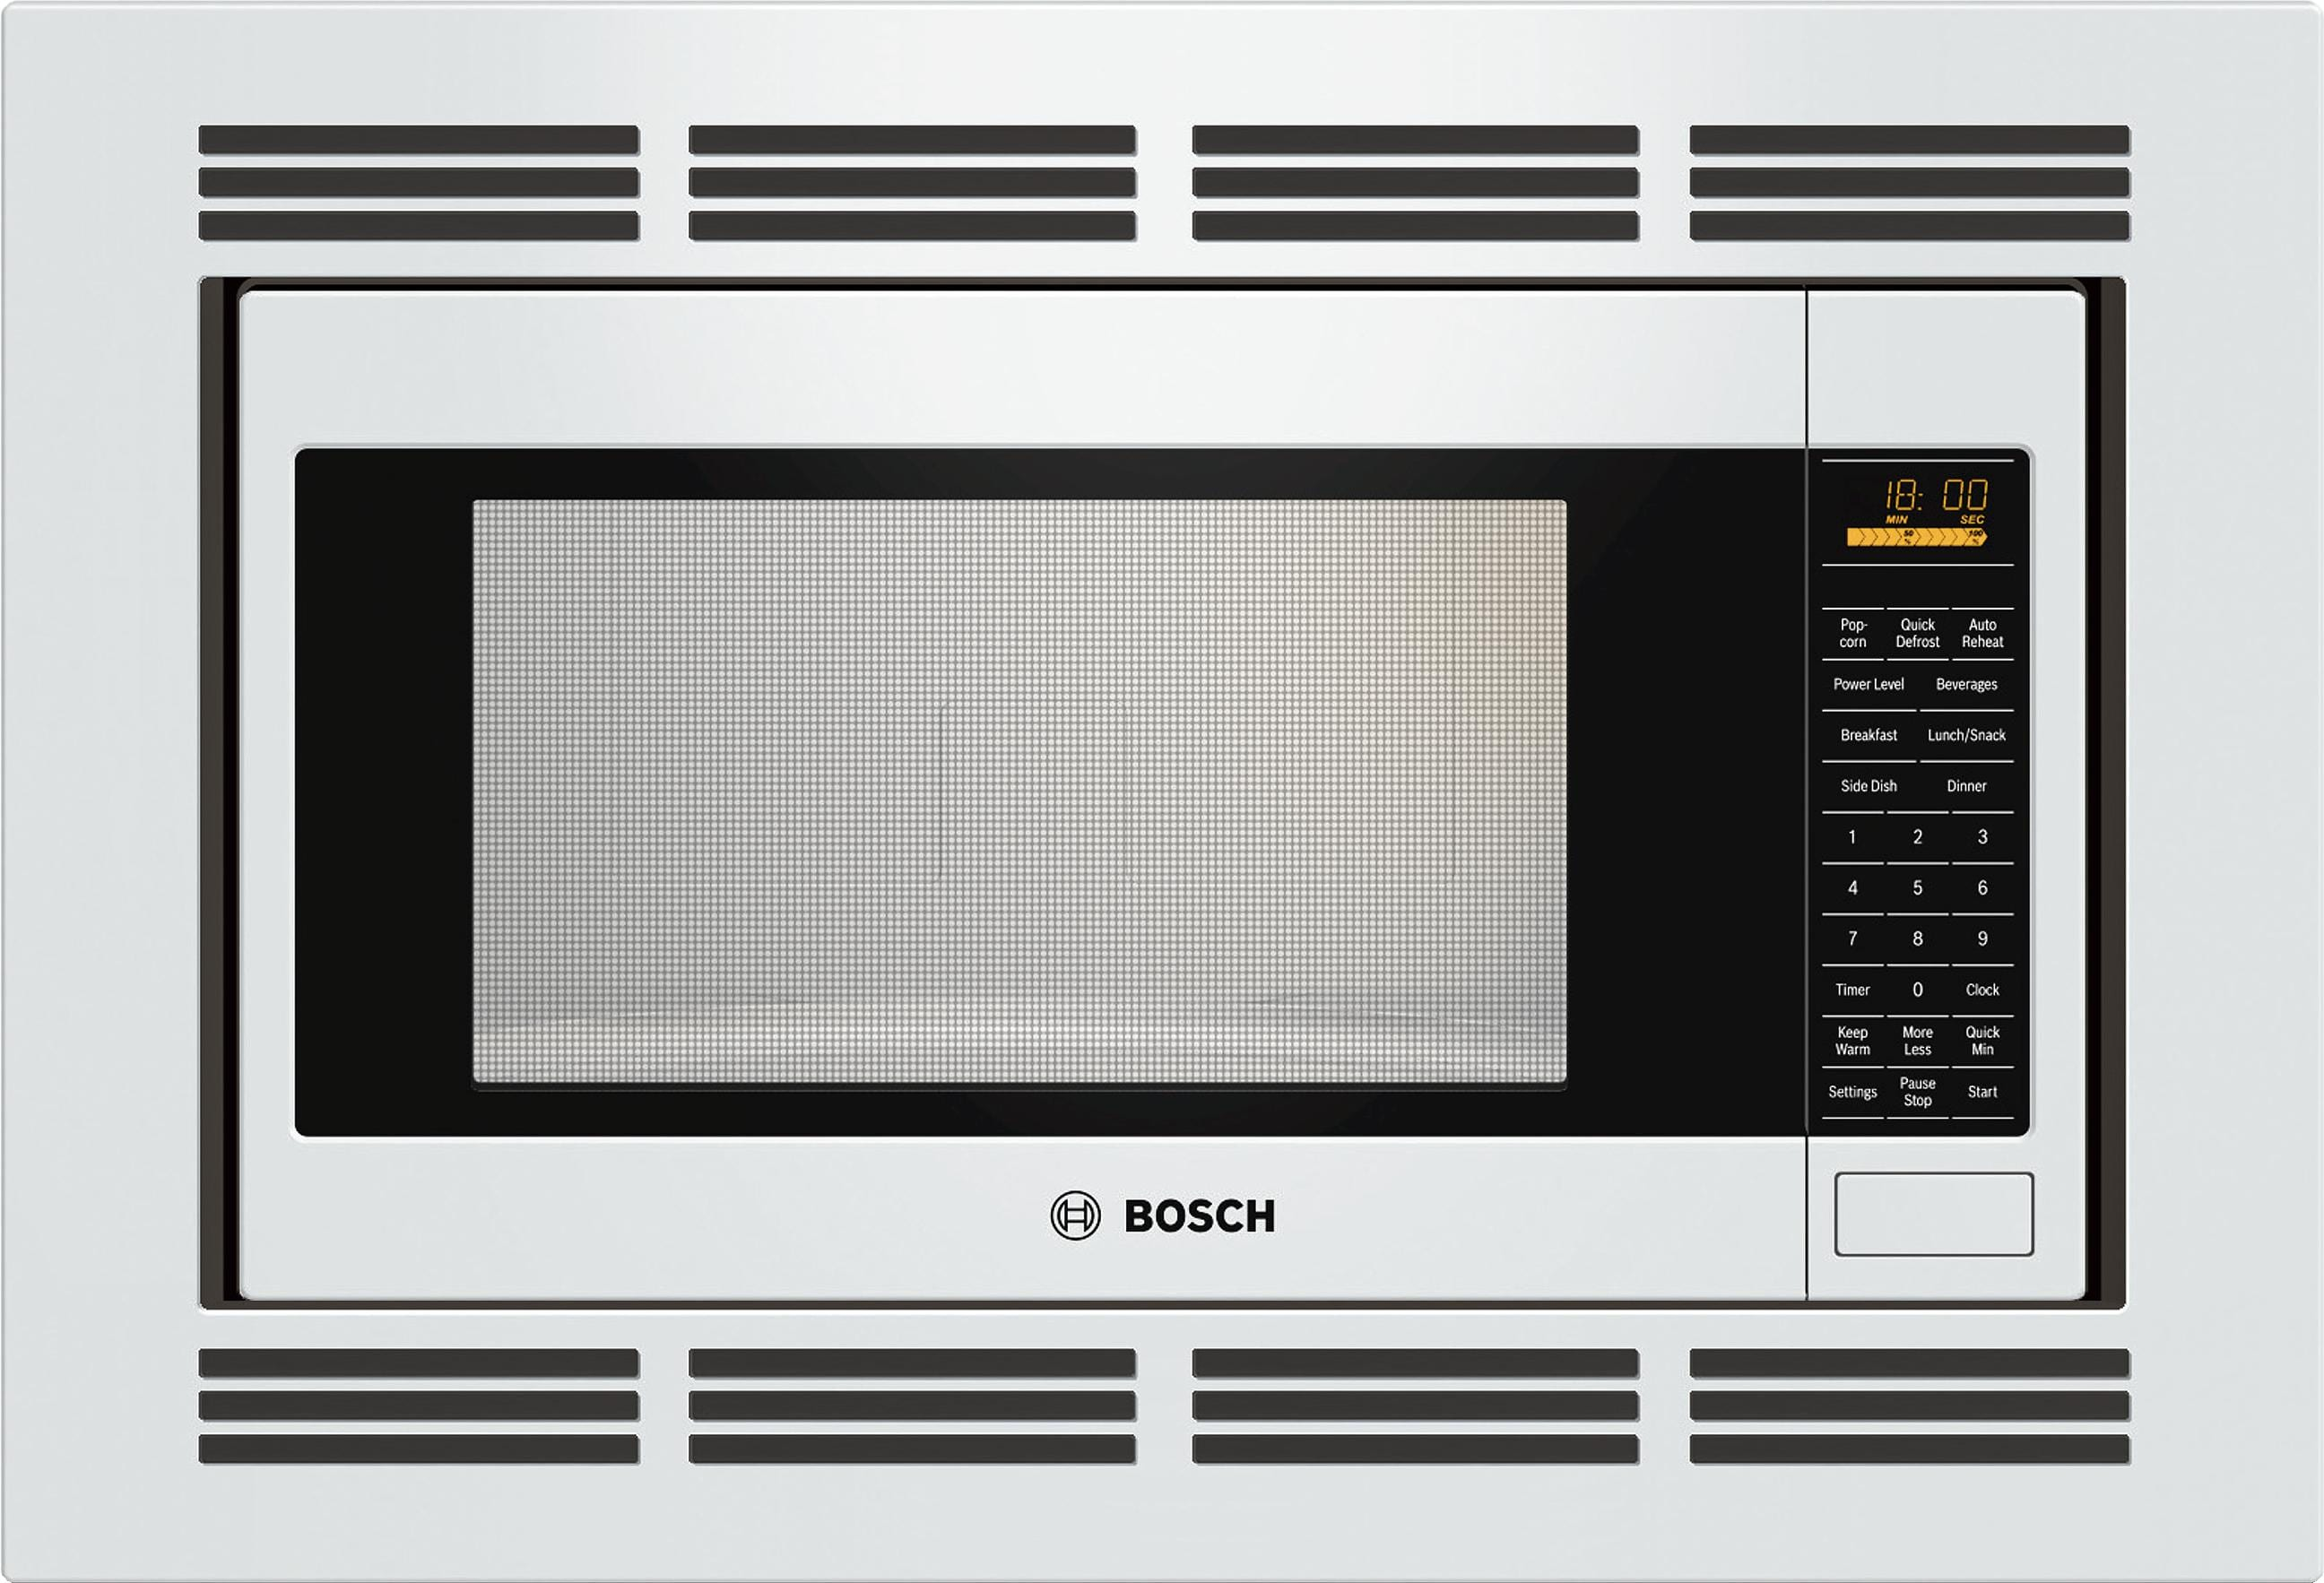 Bosch Microwave Built In Microwave 500 Series White